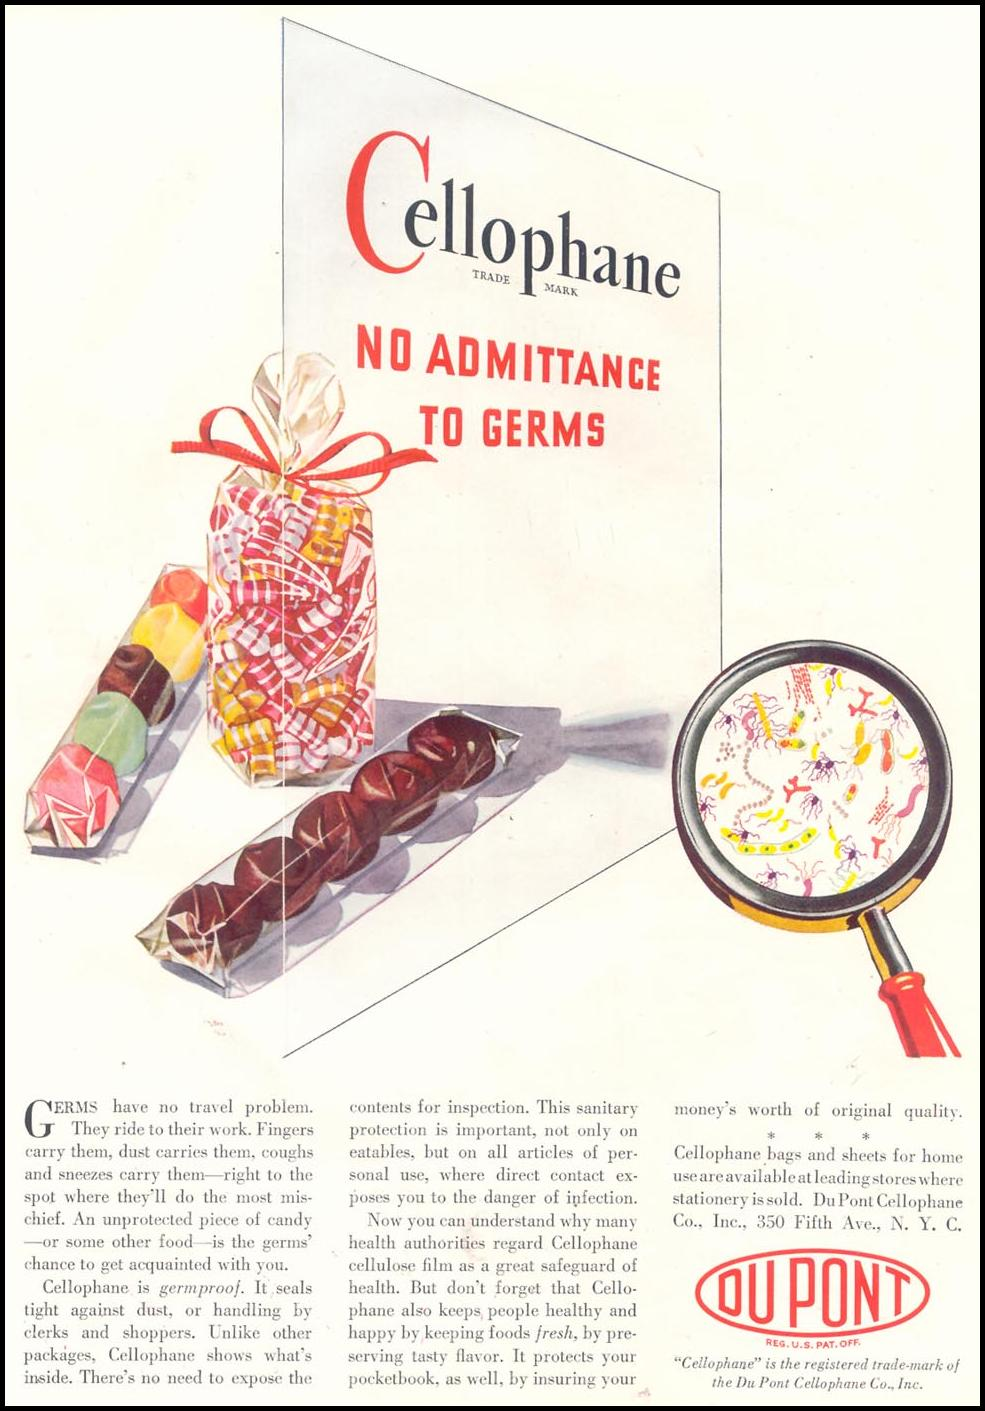 DU PONT CELLOPHANE GOOD HOUSEKEEPING 11/01/1933